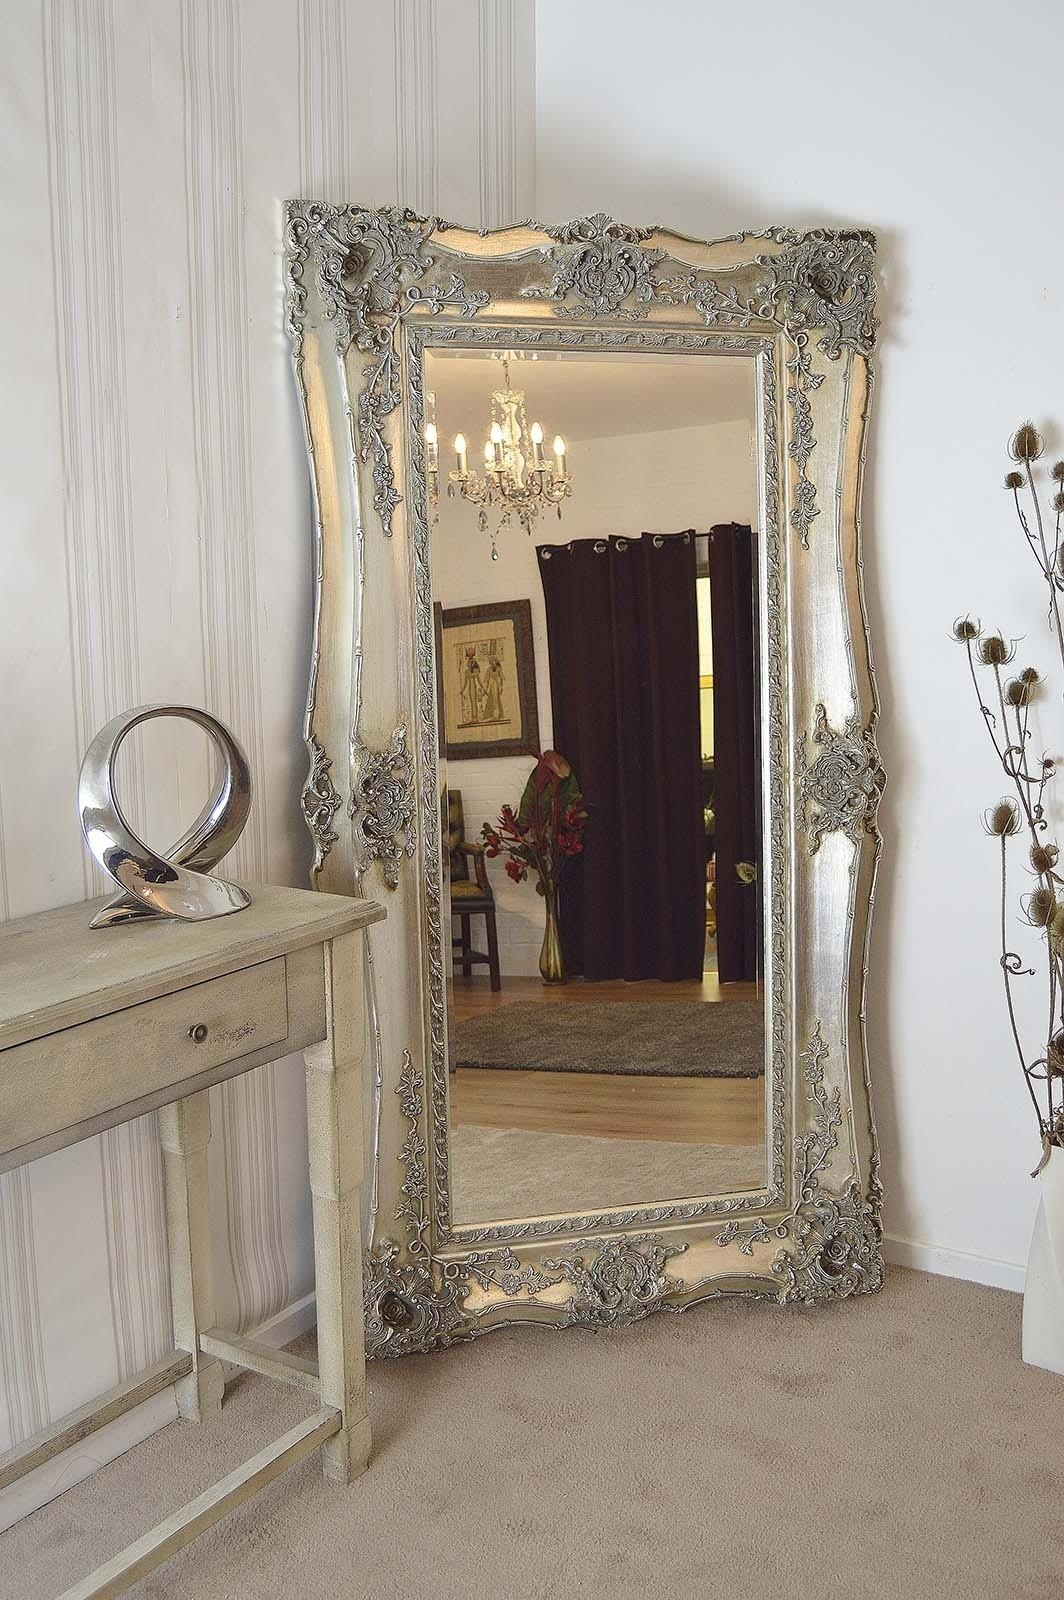 Large Antique Wall Mirror Ornate Frame Antique Ornate Wall Mirrors Regarding Vintage Large Mirrors (Image 10 of 20)